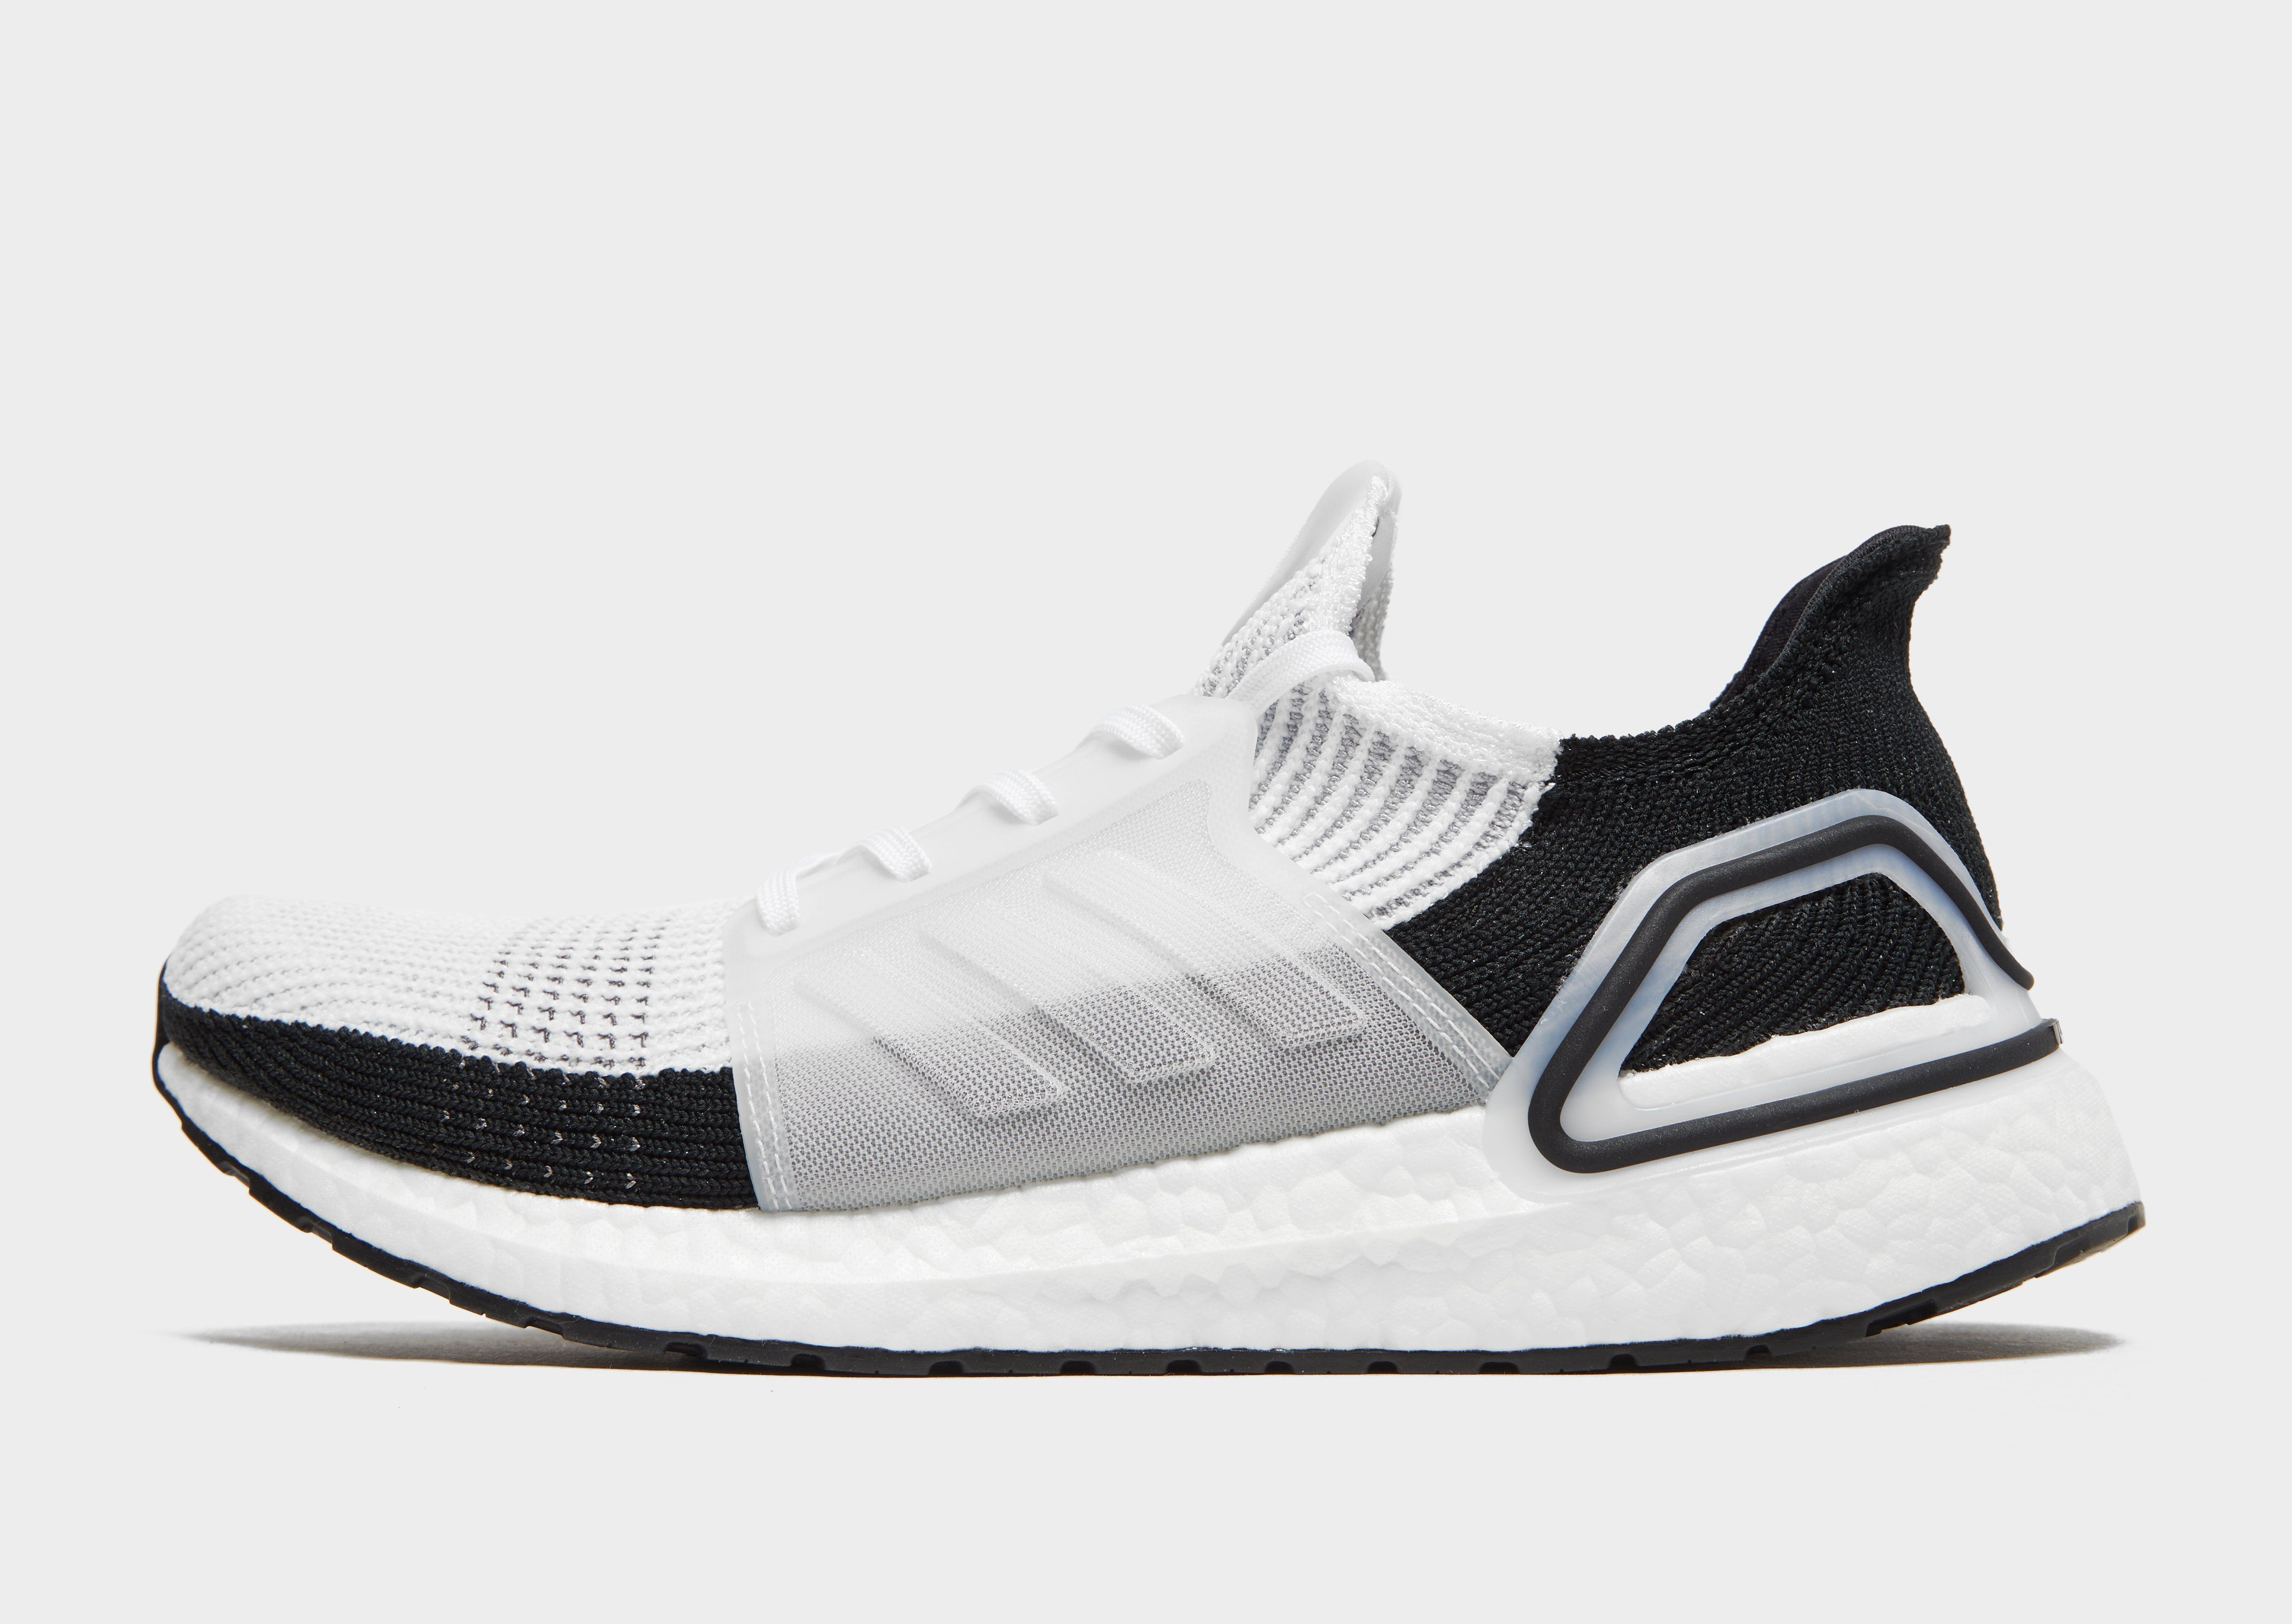 hot sale online 5b4e6 37c26 adidas Ultra Boost 19